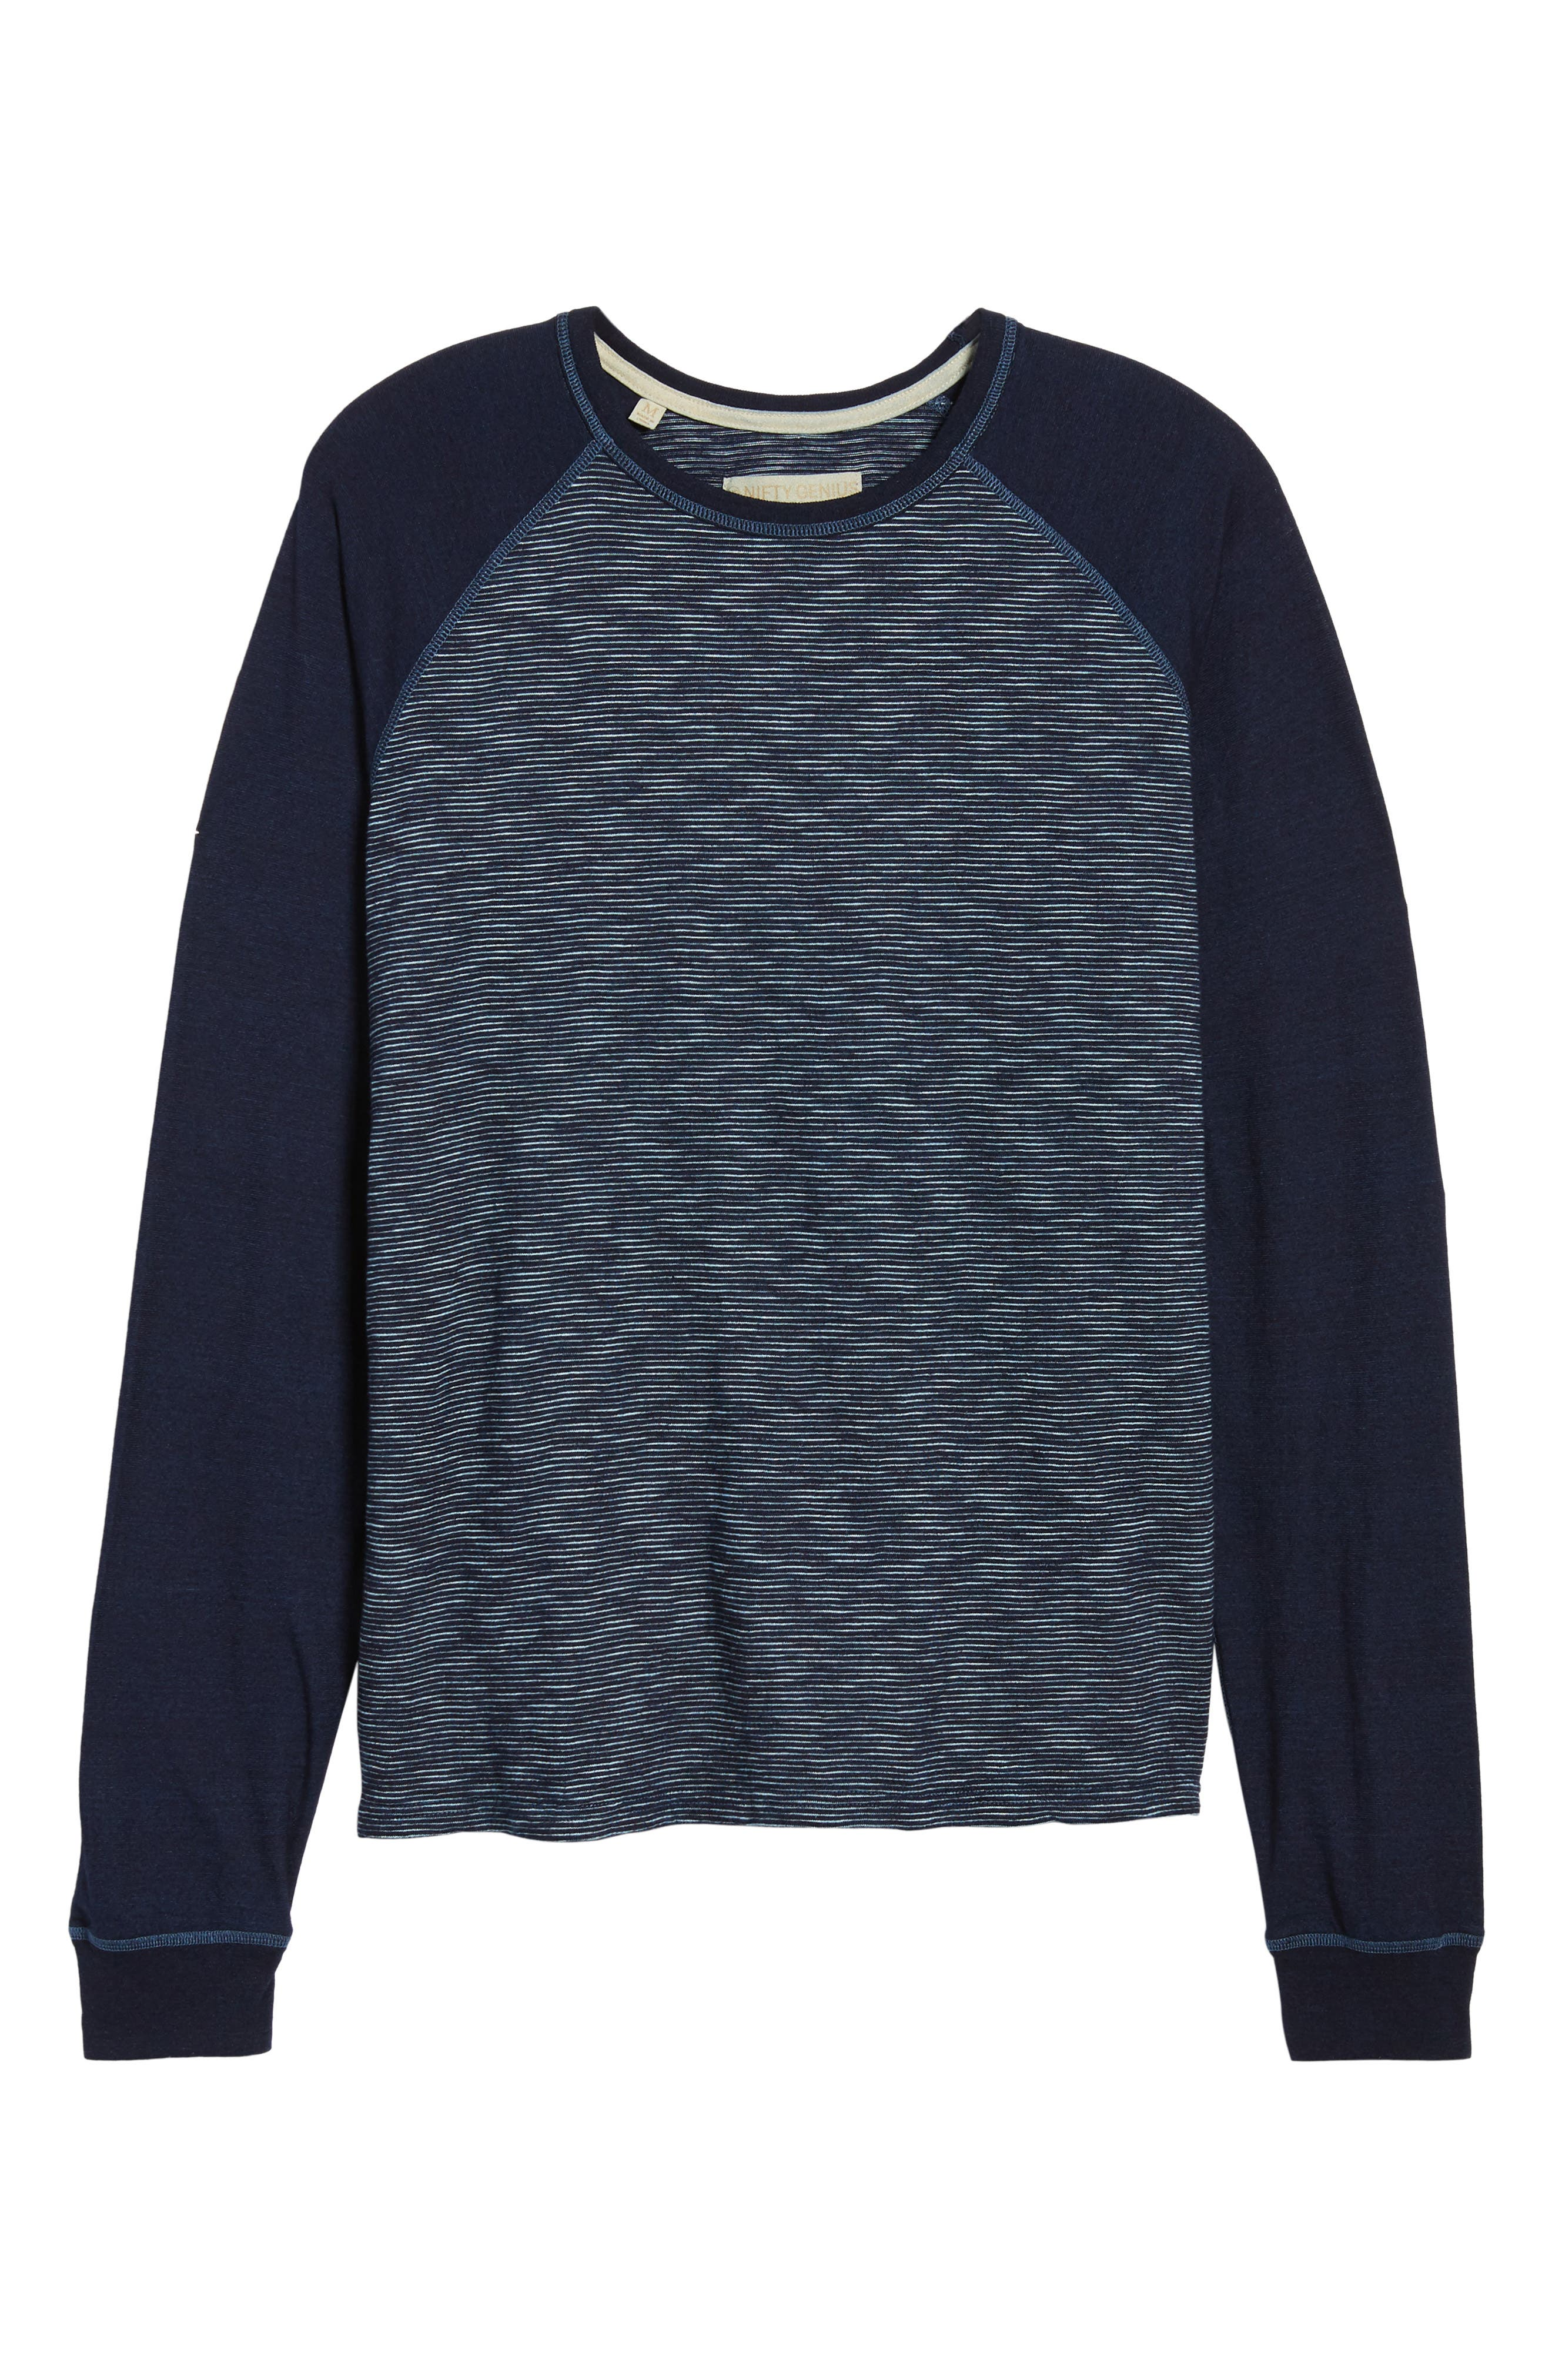 NIFTY GENIUS,                             Jackie Stripe Raglan Pullover,                             Alternate thumbnail 6, color,                             401